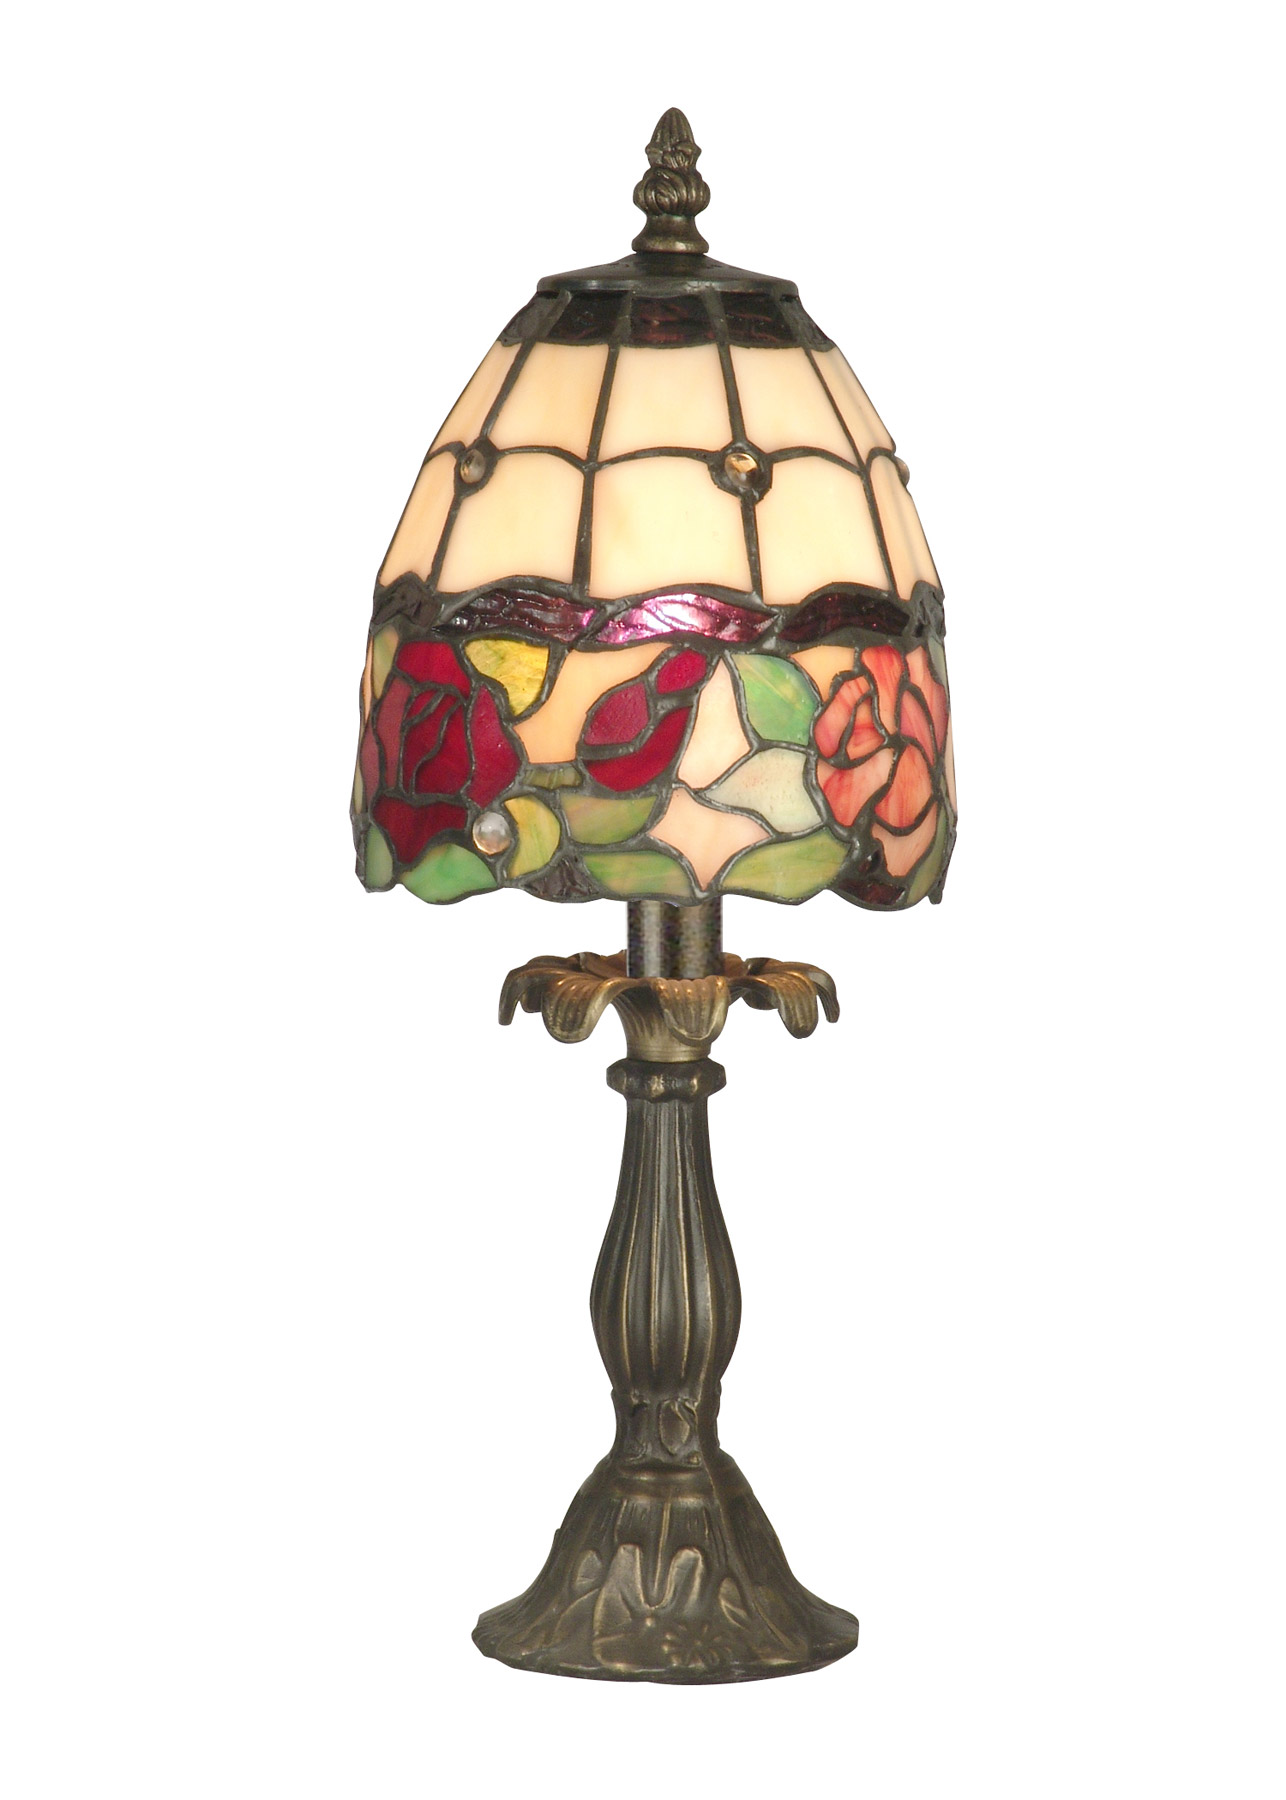 home lamps table lamps accent lamps dale tiffany ta70711. Black Bedroom Furniture Sets. Home Design Ideas